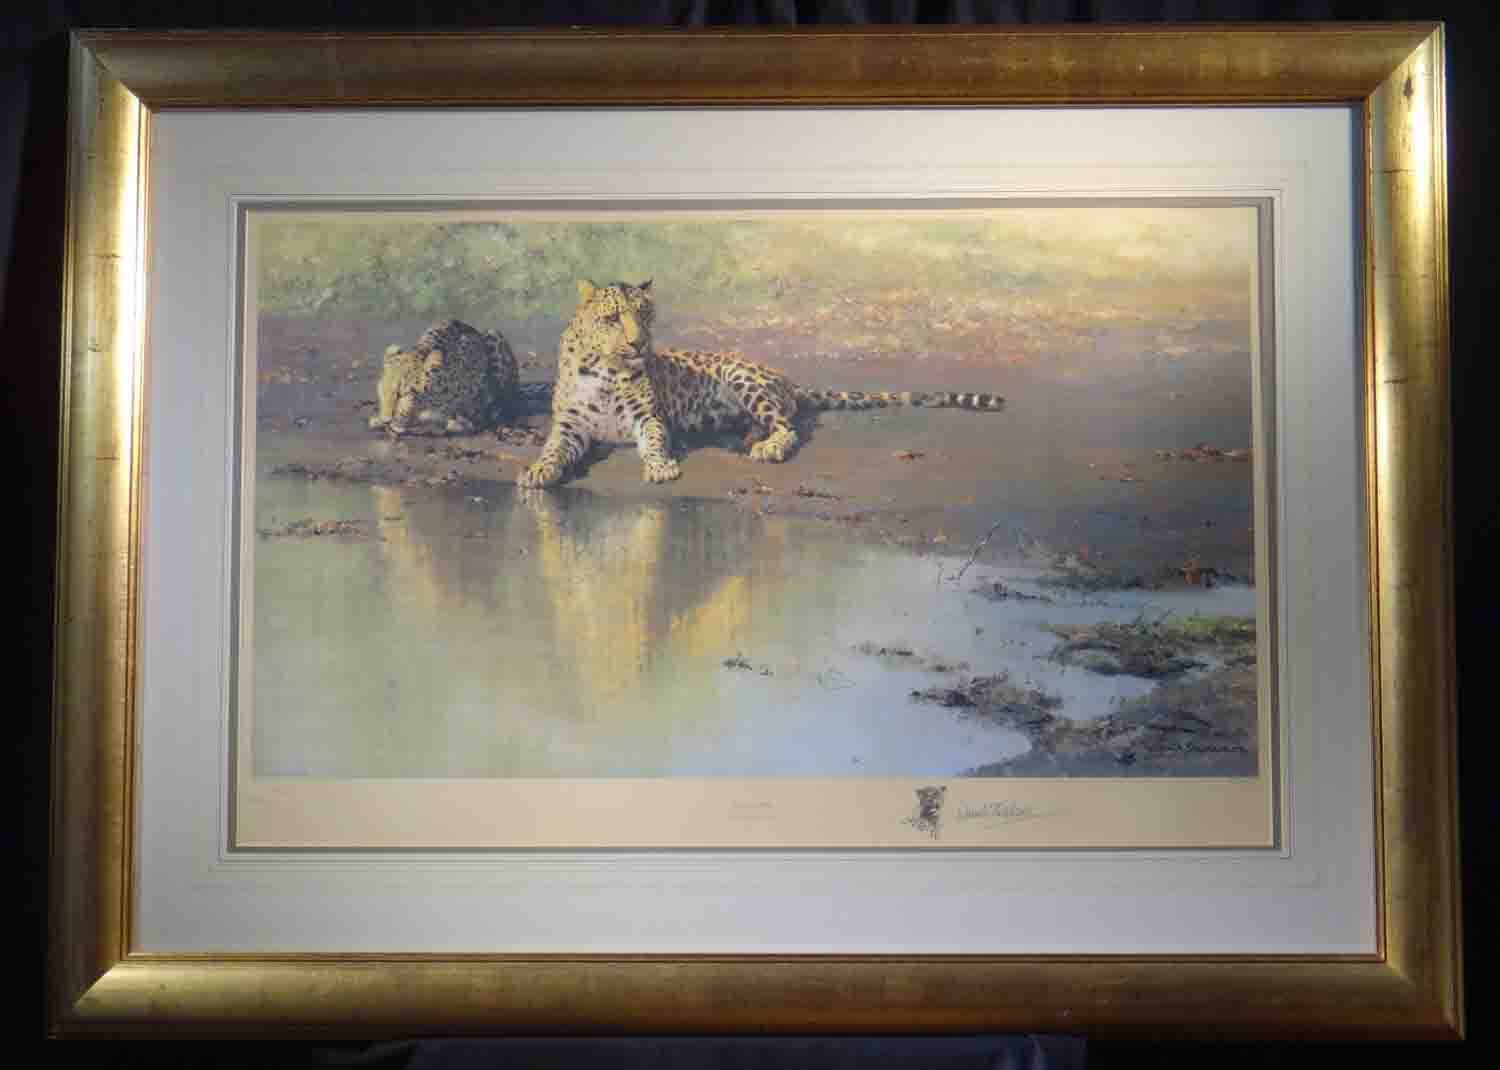 david shepherd cool waters, leopards